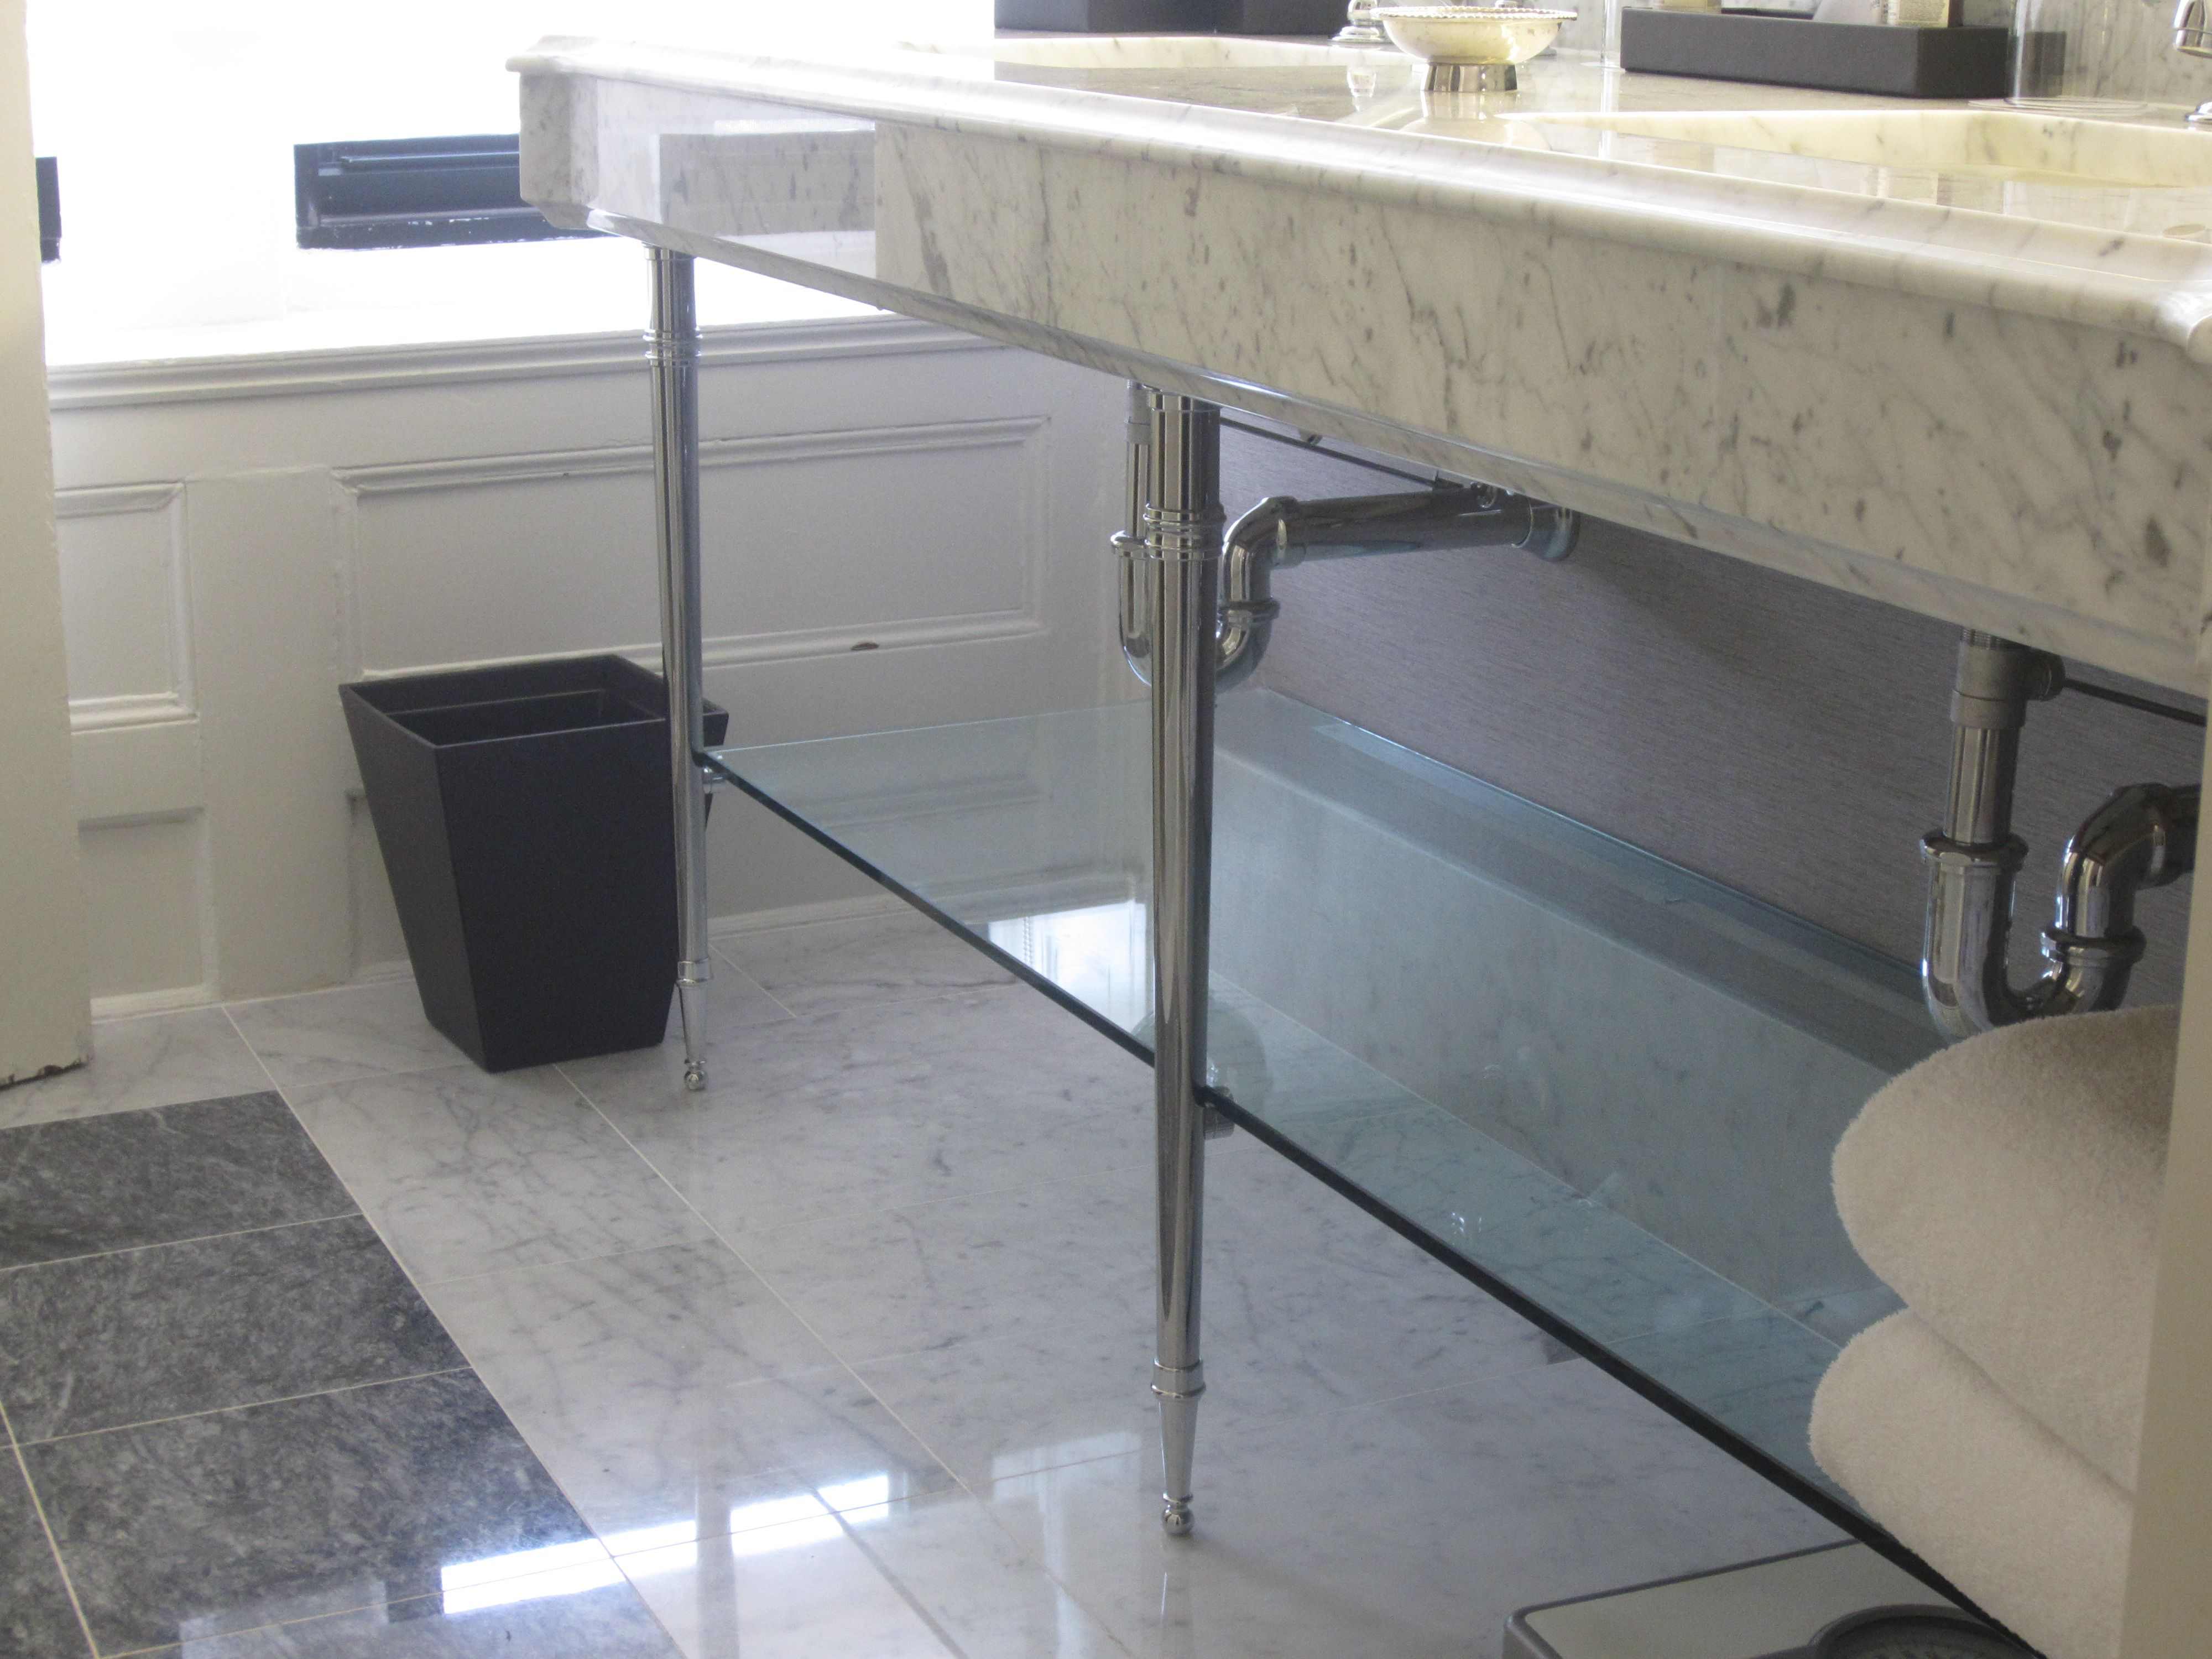 Tapered Leg Model Shown In Polished Chrome Finish With